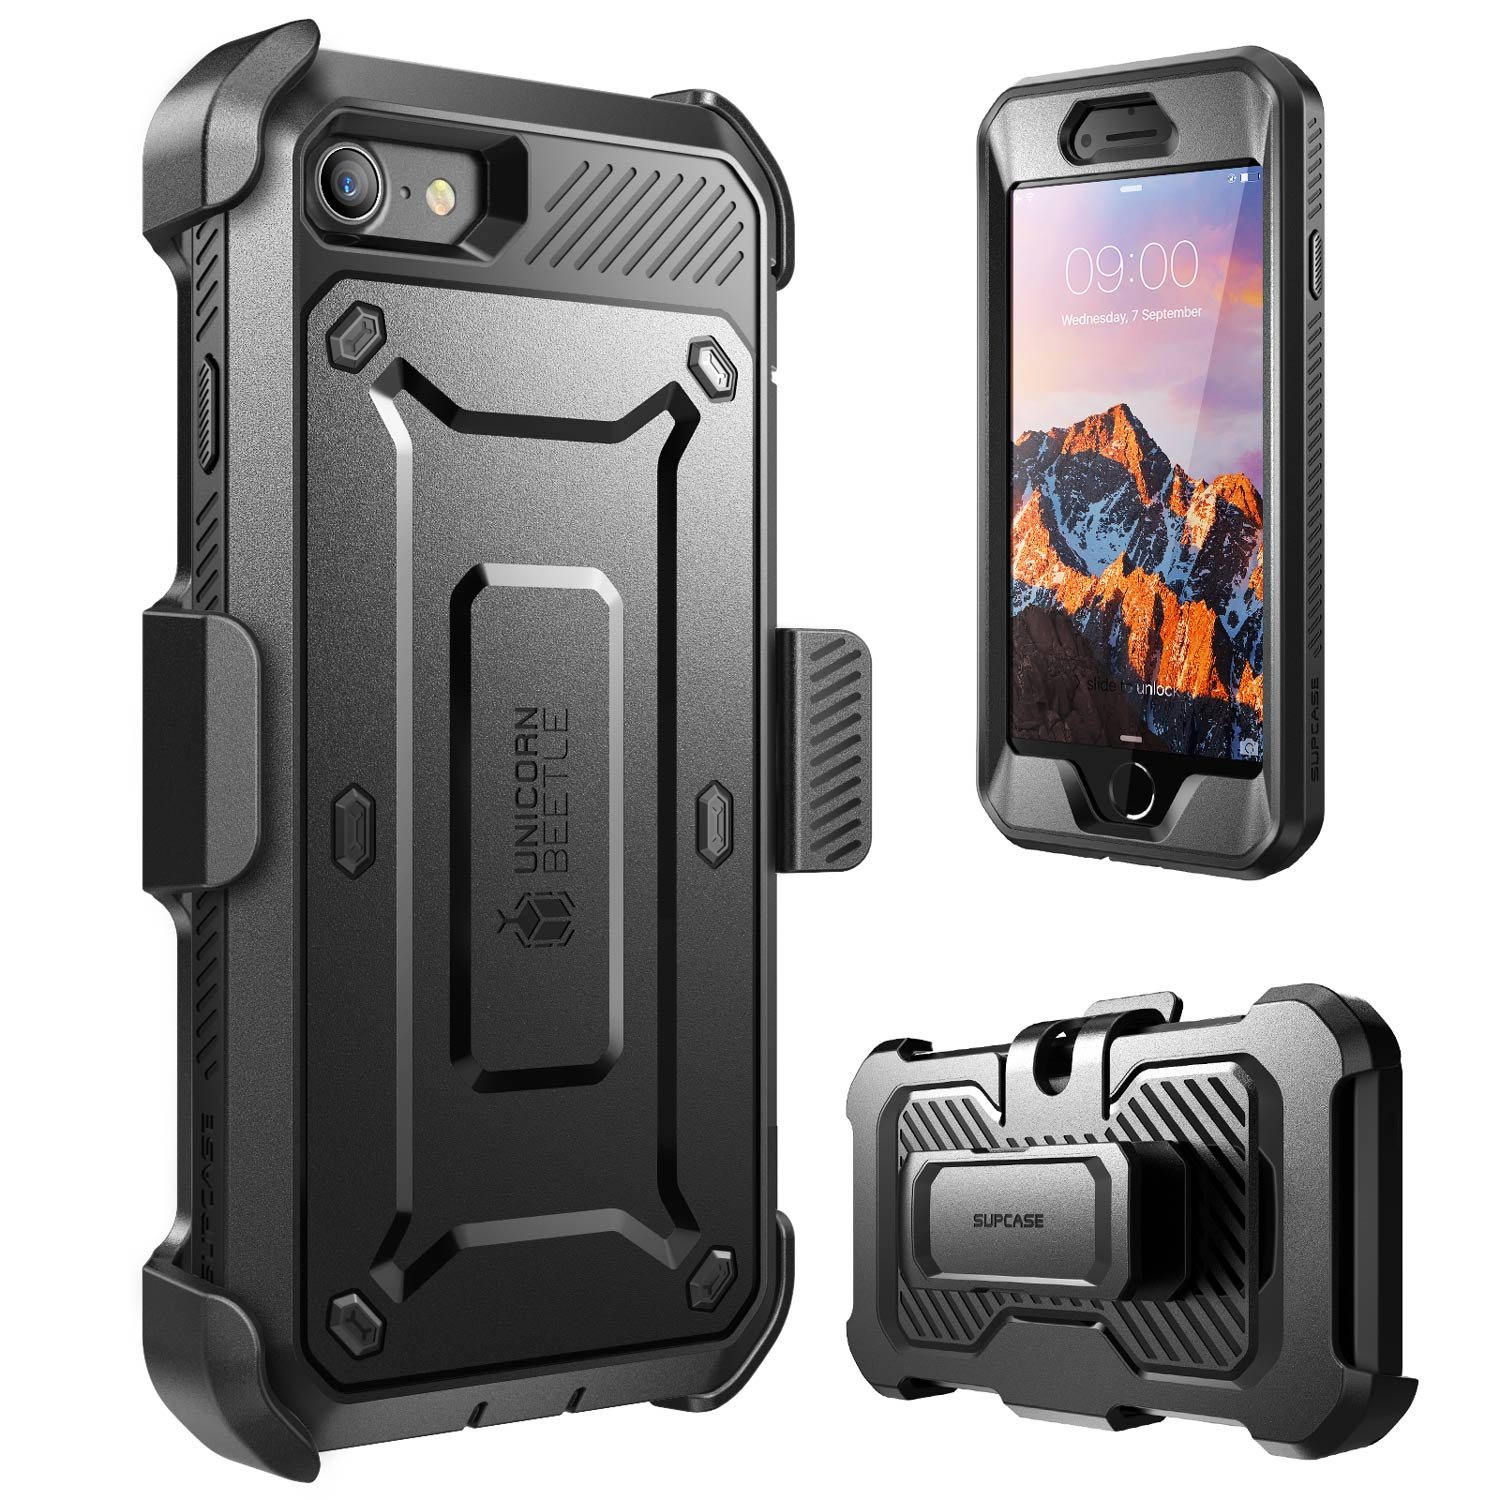 iPhone 8 Case, SUPCASE Full-body Rugged Holster Case with Built-in Screen Protector for Apple iPhone 7 2016/iPhone 8 (2017 Release), Unicorn Beetle PRO Series - Retail Package (Black/Black) by SUPCASE (Image #2)